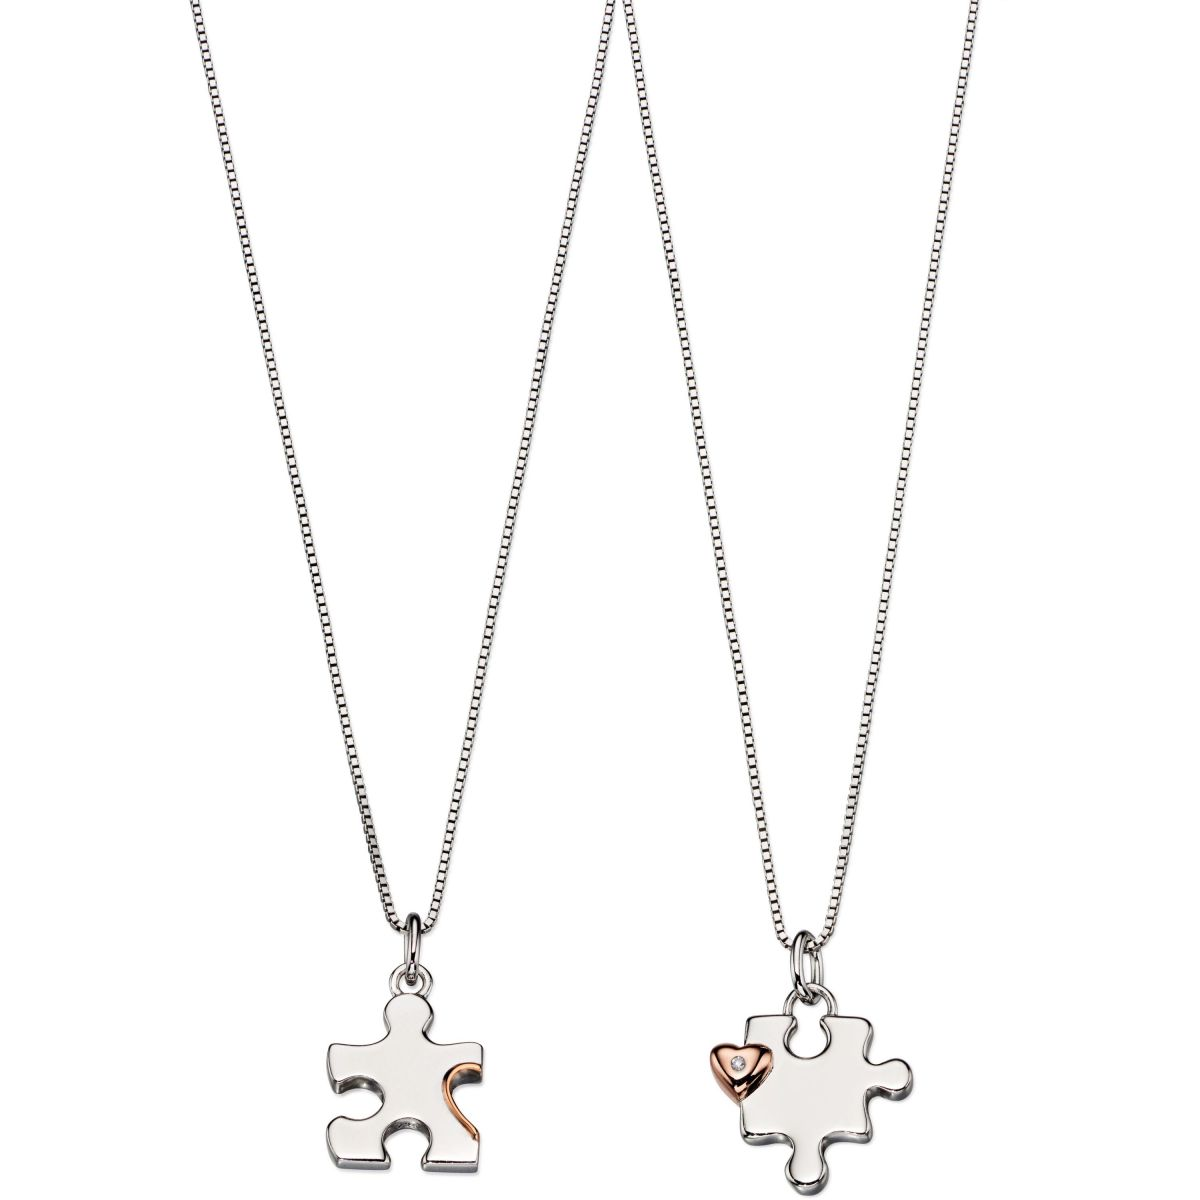 jigsaw couples piece necklace set example keyring puzzle shop